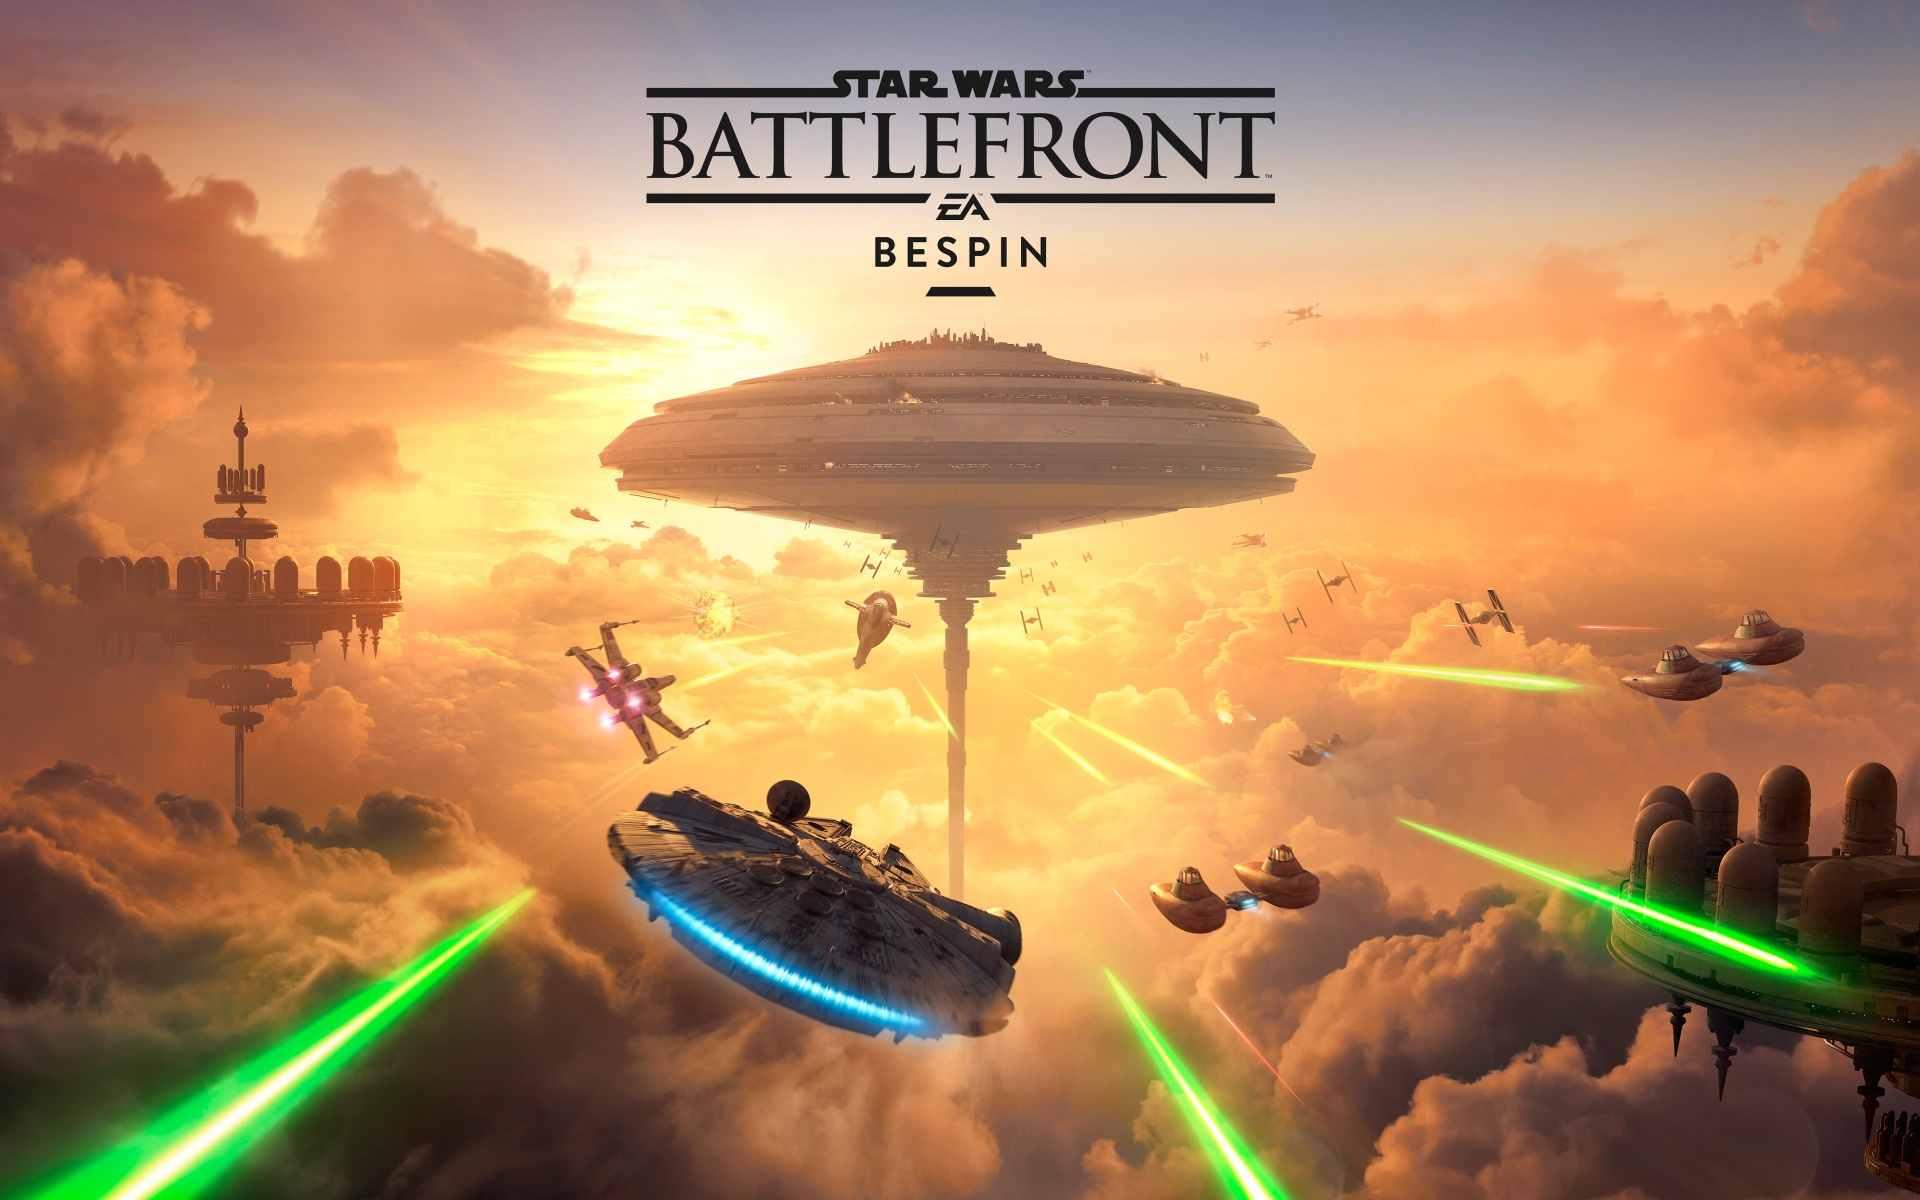 Star Wars Battlefront Bespin DLC 5K Wallpapers in jpg format for 1920x1200